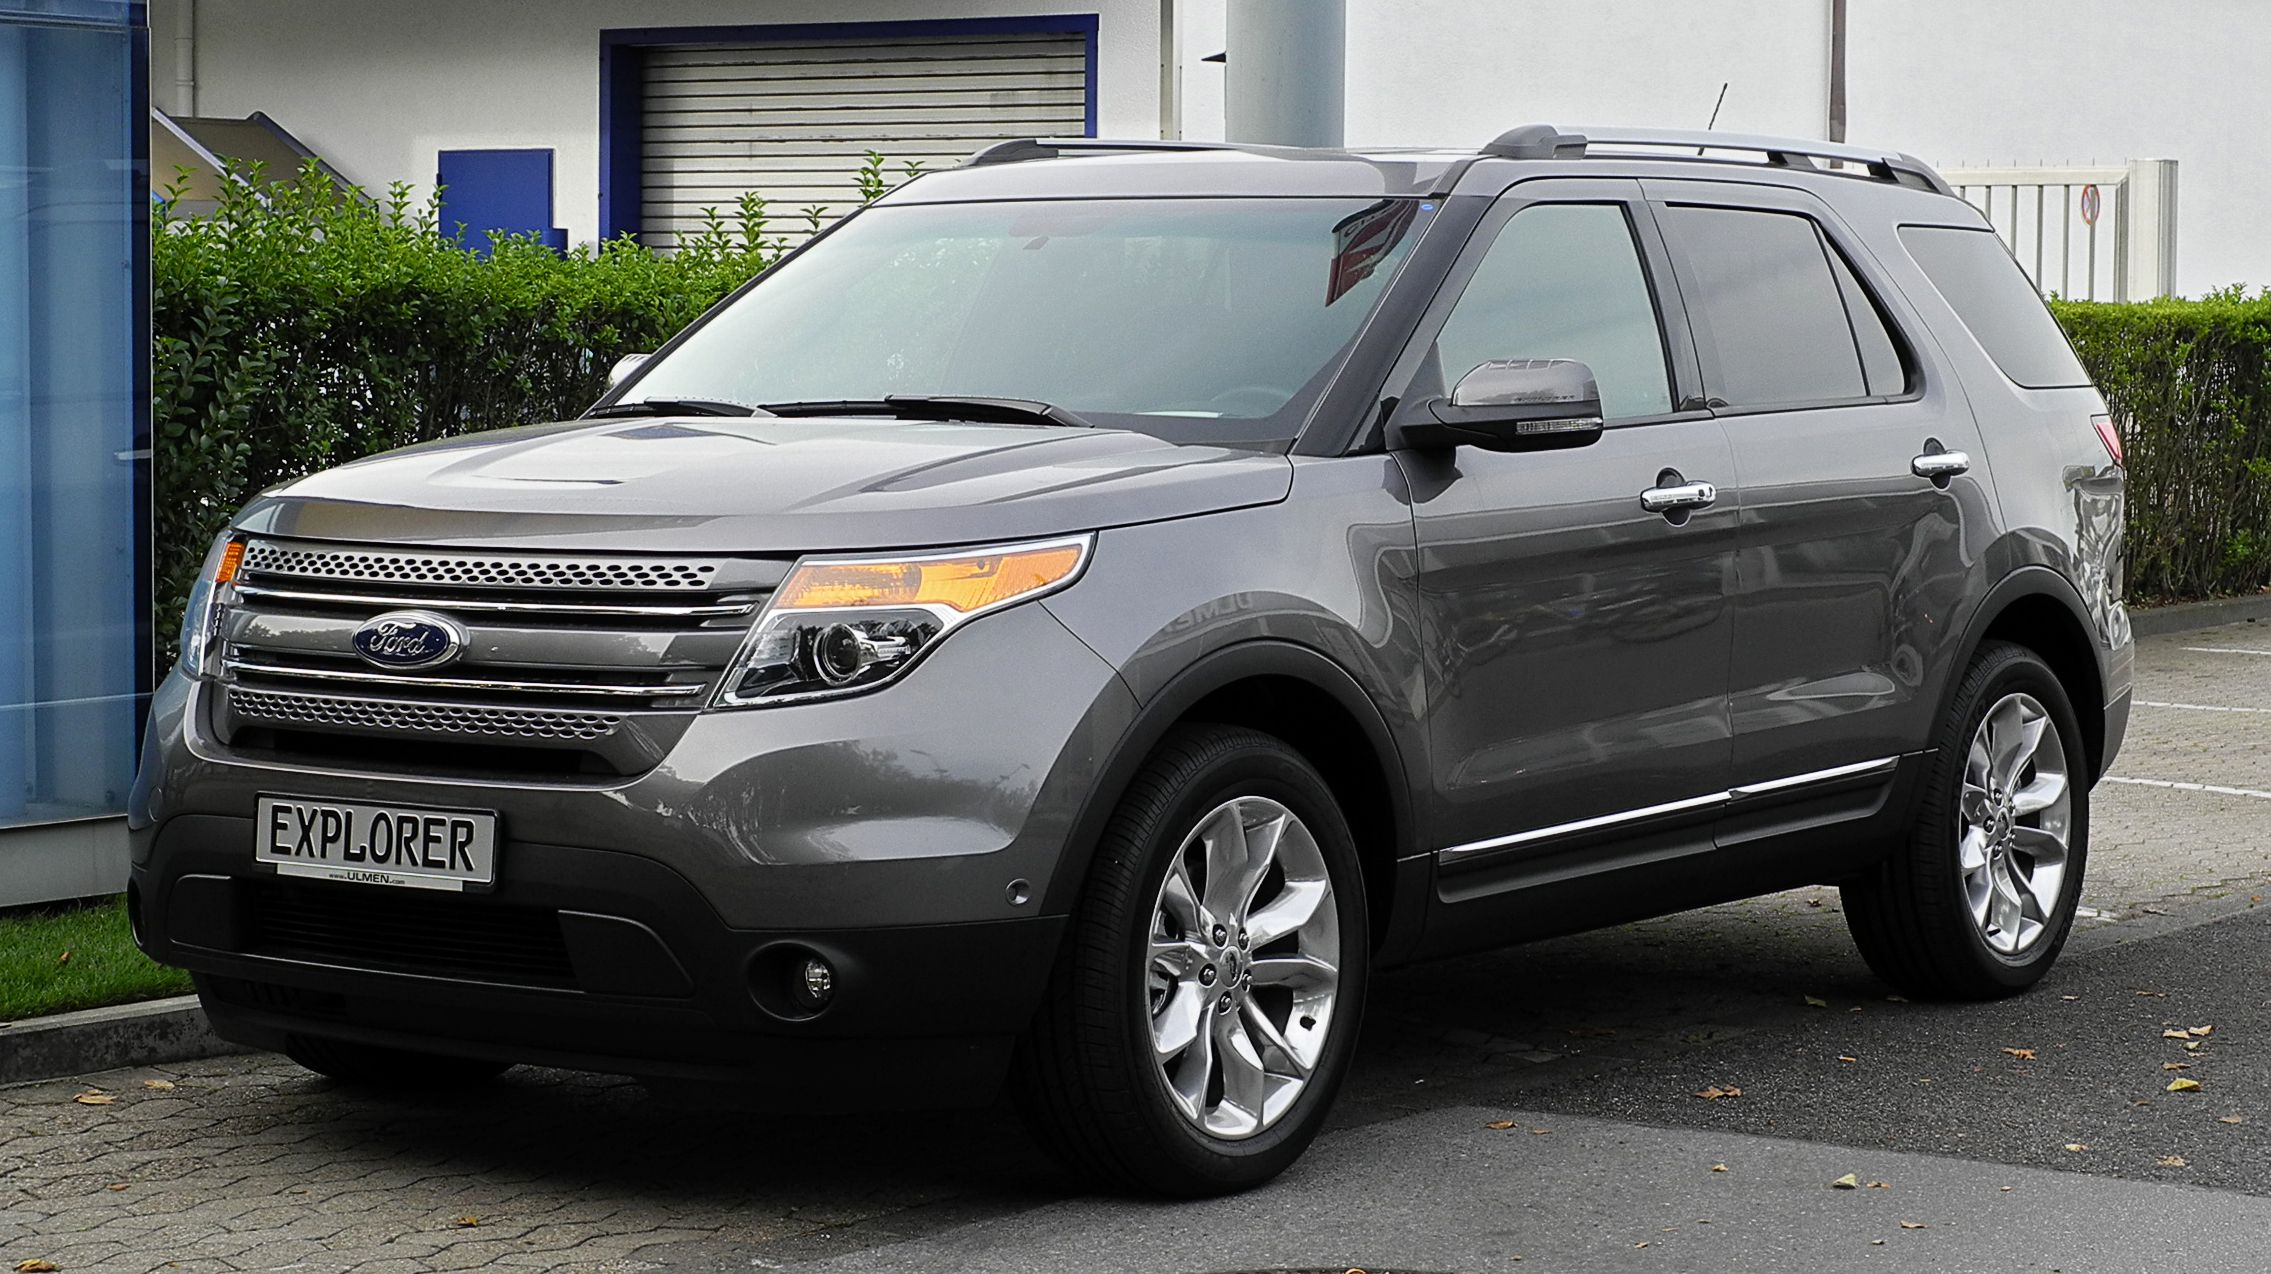 2015 Ford Explorer The Crossover Your Family Needs Ford